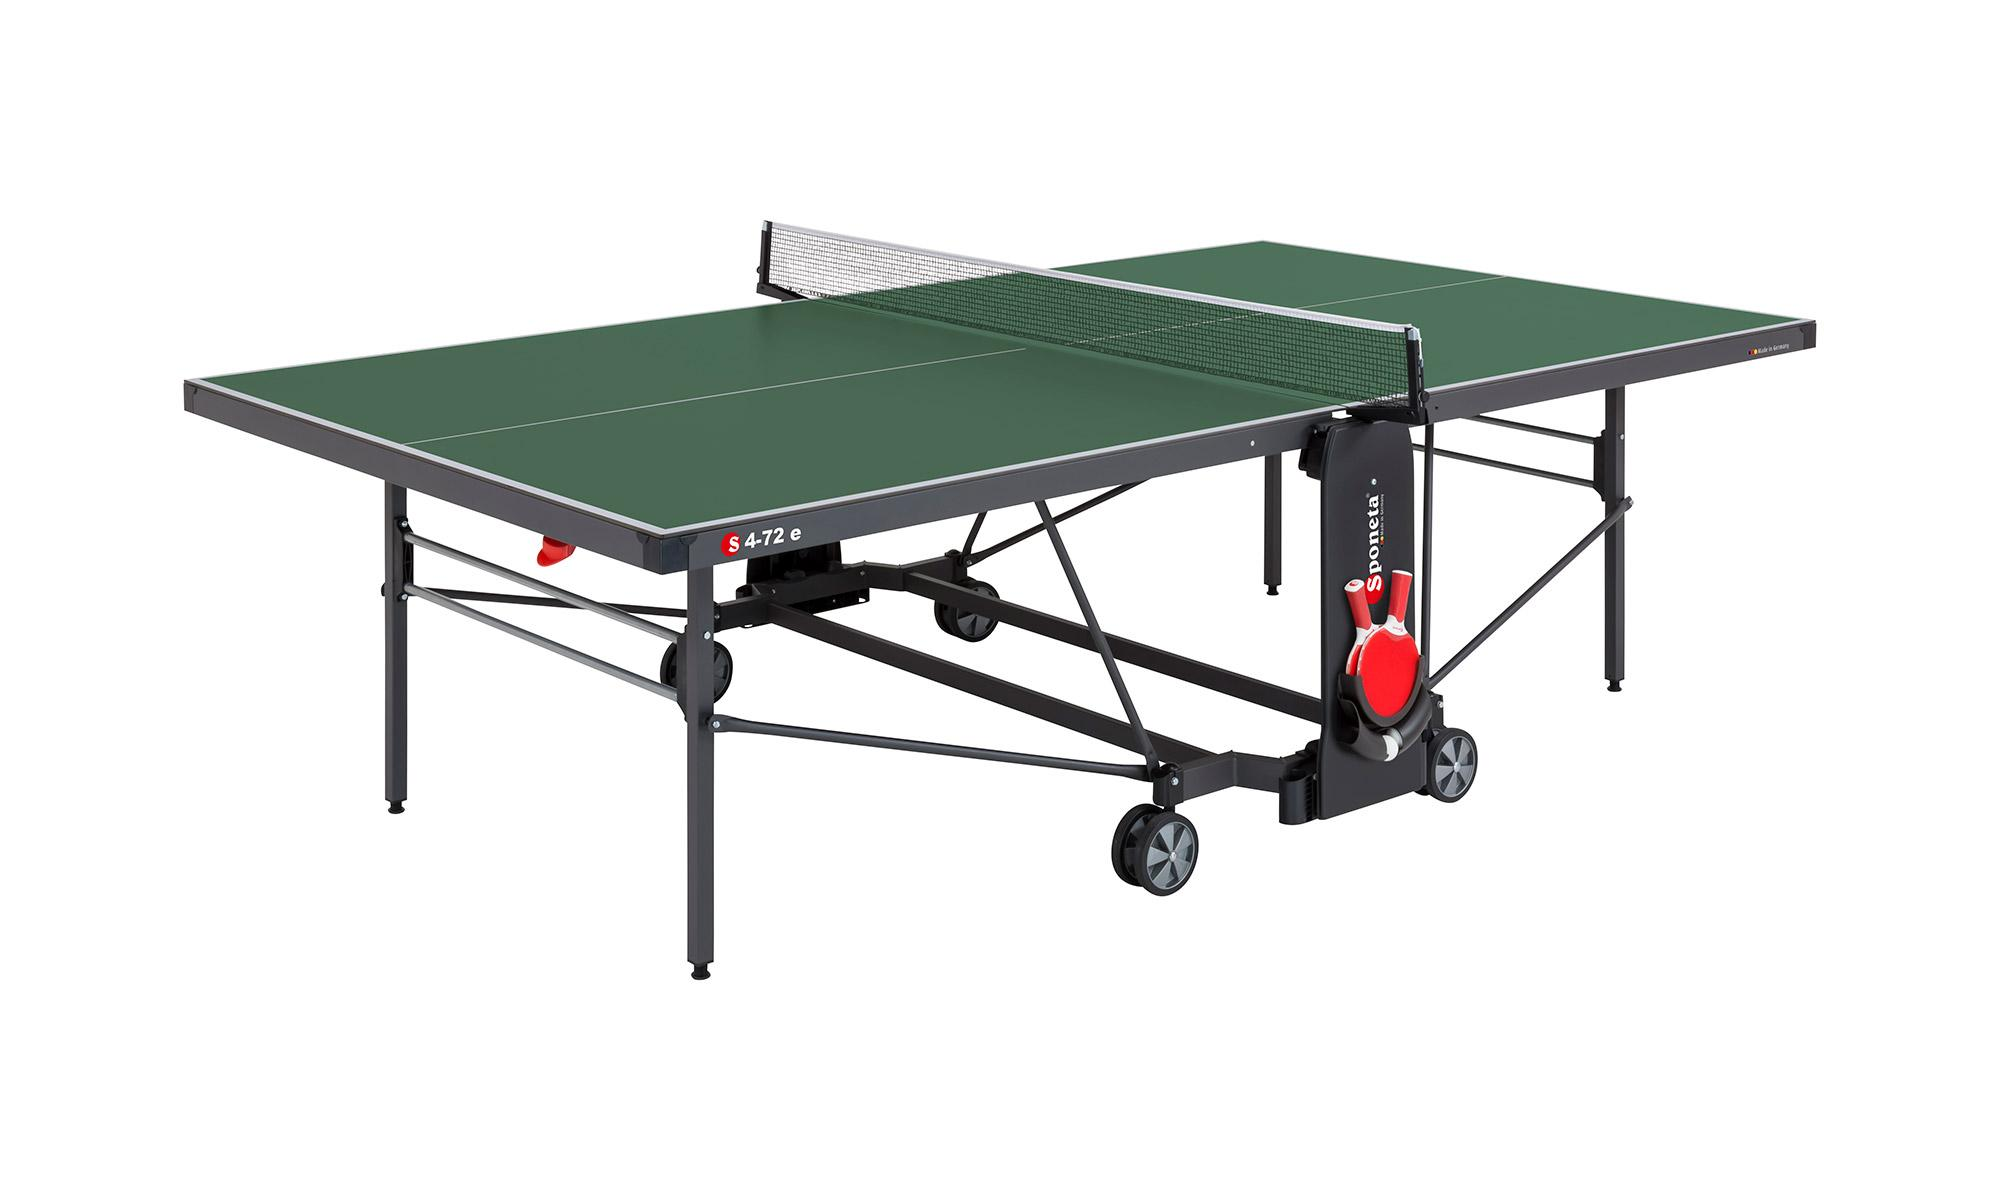 Sponeta Expert Outdoor Green Table Tennis Table